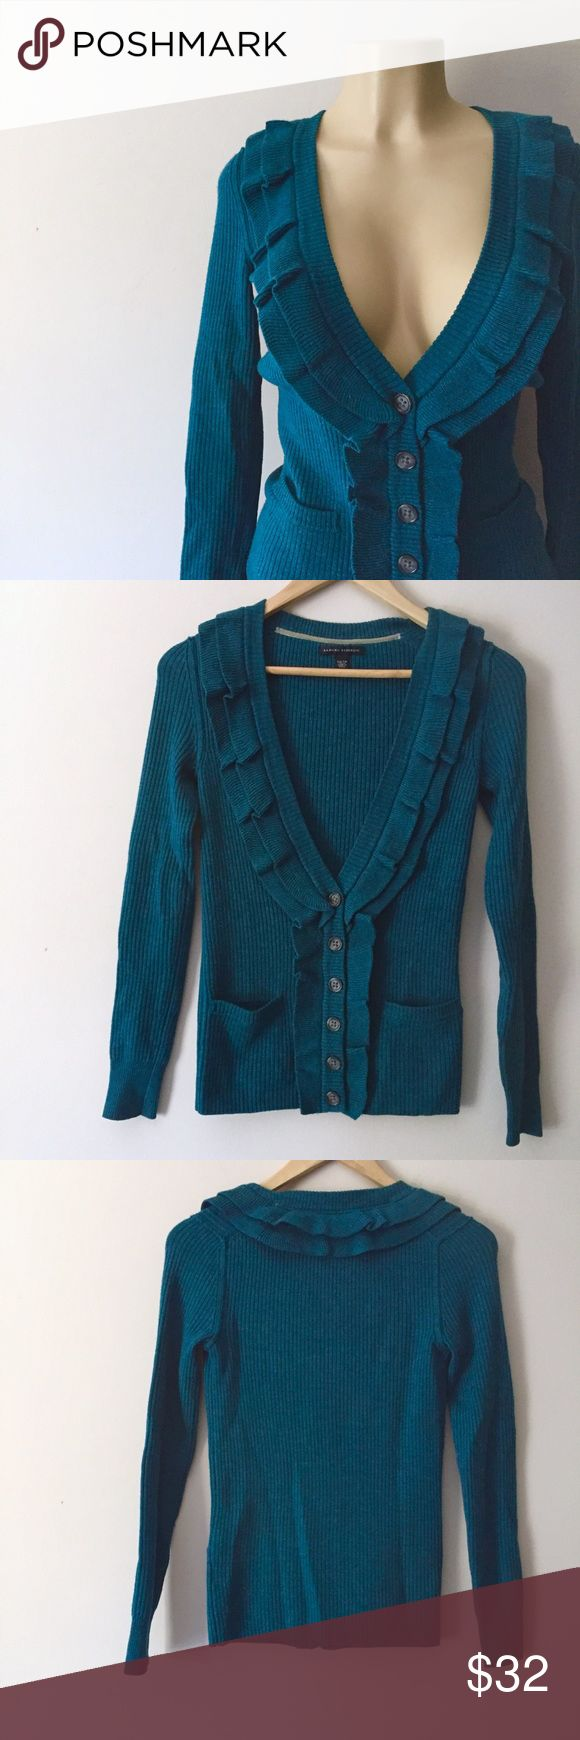 """[Banana Republic] Teal Cardigan Sweater Top Ruffle Banana Republic Teal Cardigan. Ruffle accent. V-Neckline with ruffles, 2 Front Pockets. Long Sleeves, Cable Knit Sweater. Comfortable Knit Sweater Top. Front Button up Closure. stretchy. No lining. Merino Wool Blend. Made in China.  Measurements are Flat Across.  ▪️Pit to Pit: 17.5"""" ▪️Length: 25.5"""" ▪️Hips: 14.5""""  ▪️Condition: Great Condition. No Flaws. No Fading.  ▪️Retail: $98.00 #16621165 Banana Republic Sweaters Cardigans"""